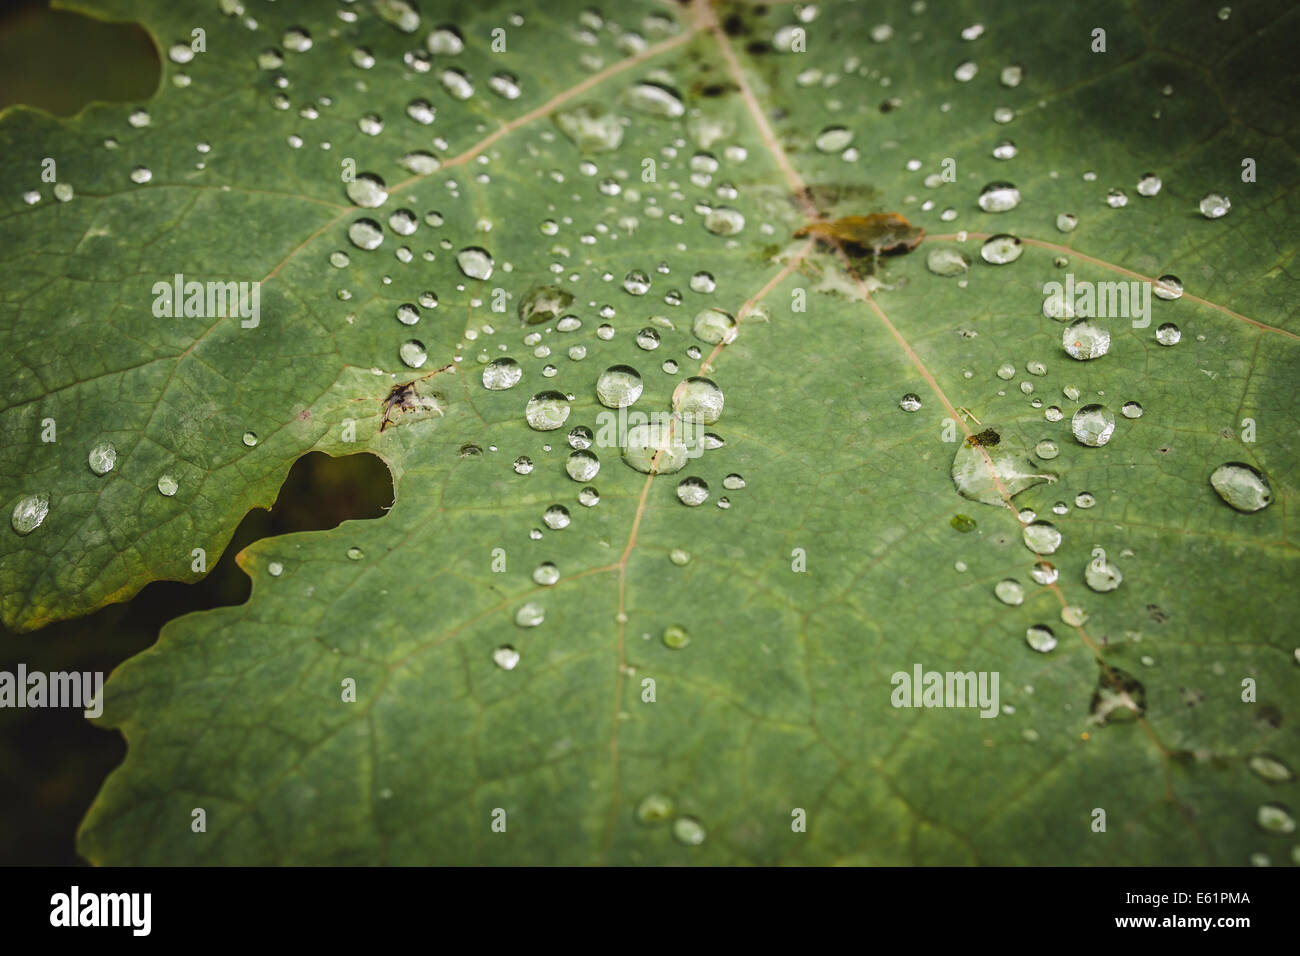 Dewdrops on early morning leaves - Stock Image